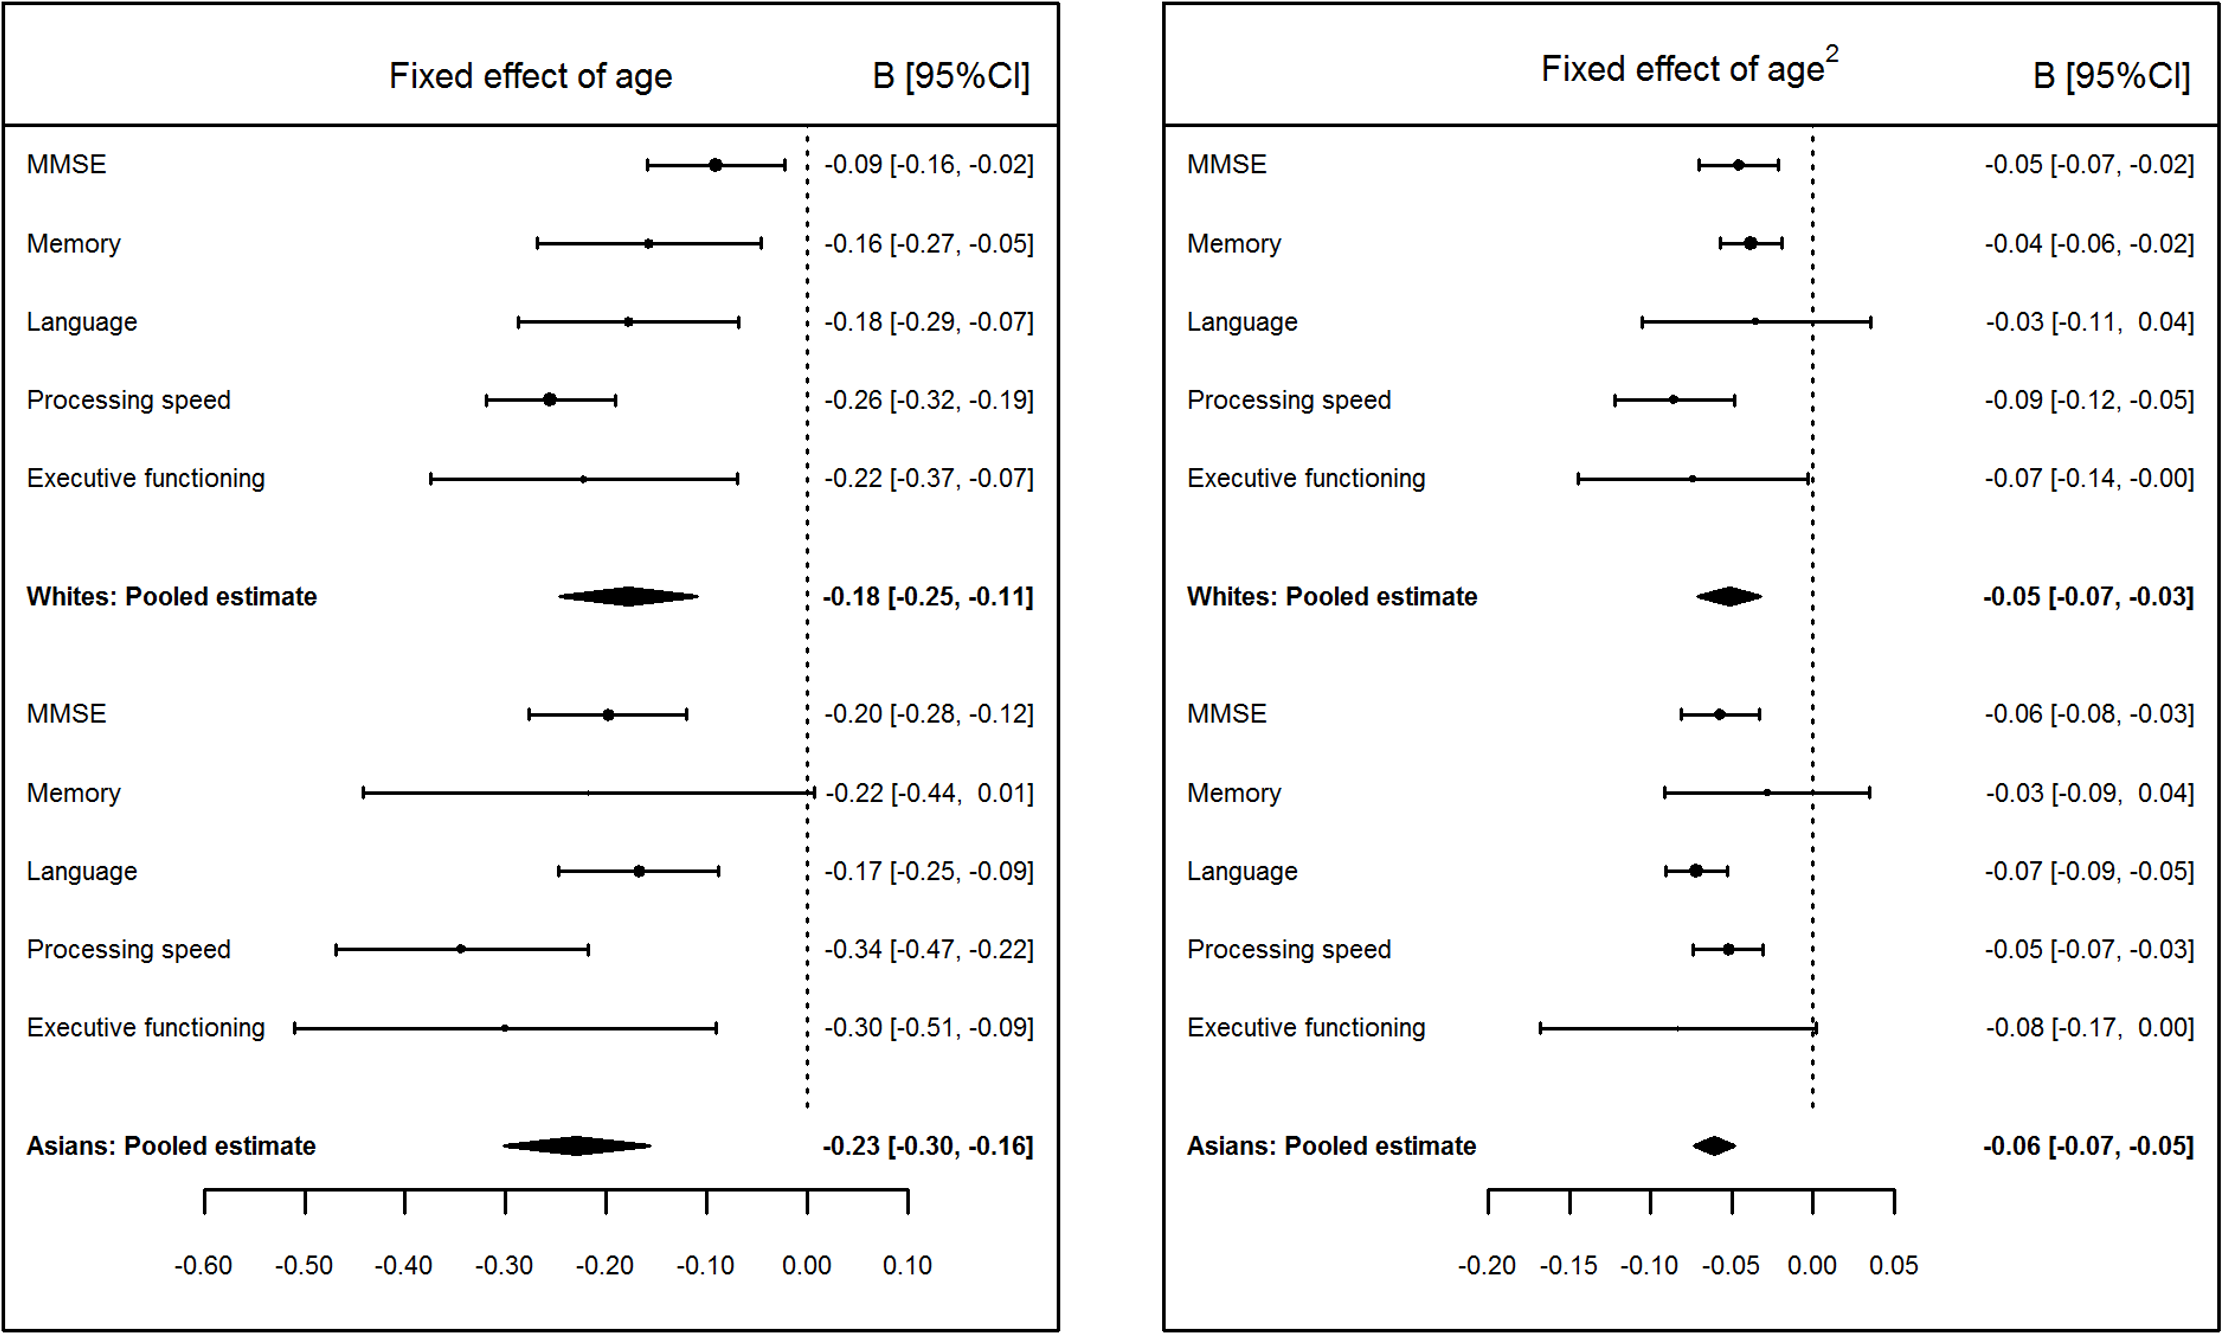 Pooled values of age and age<sup>2</sup> fixed effects on Mini-Mental State Examination (MMSE) and cognitive domain scores for white and Asian groups.